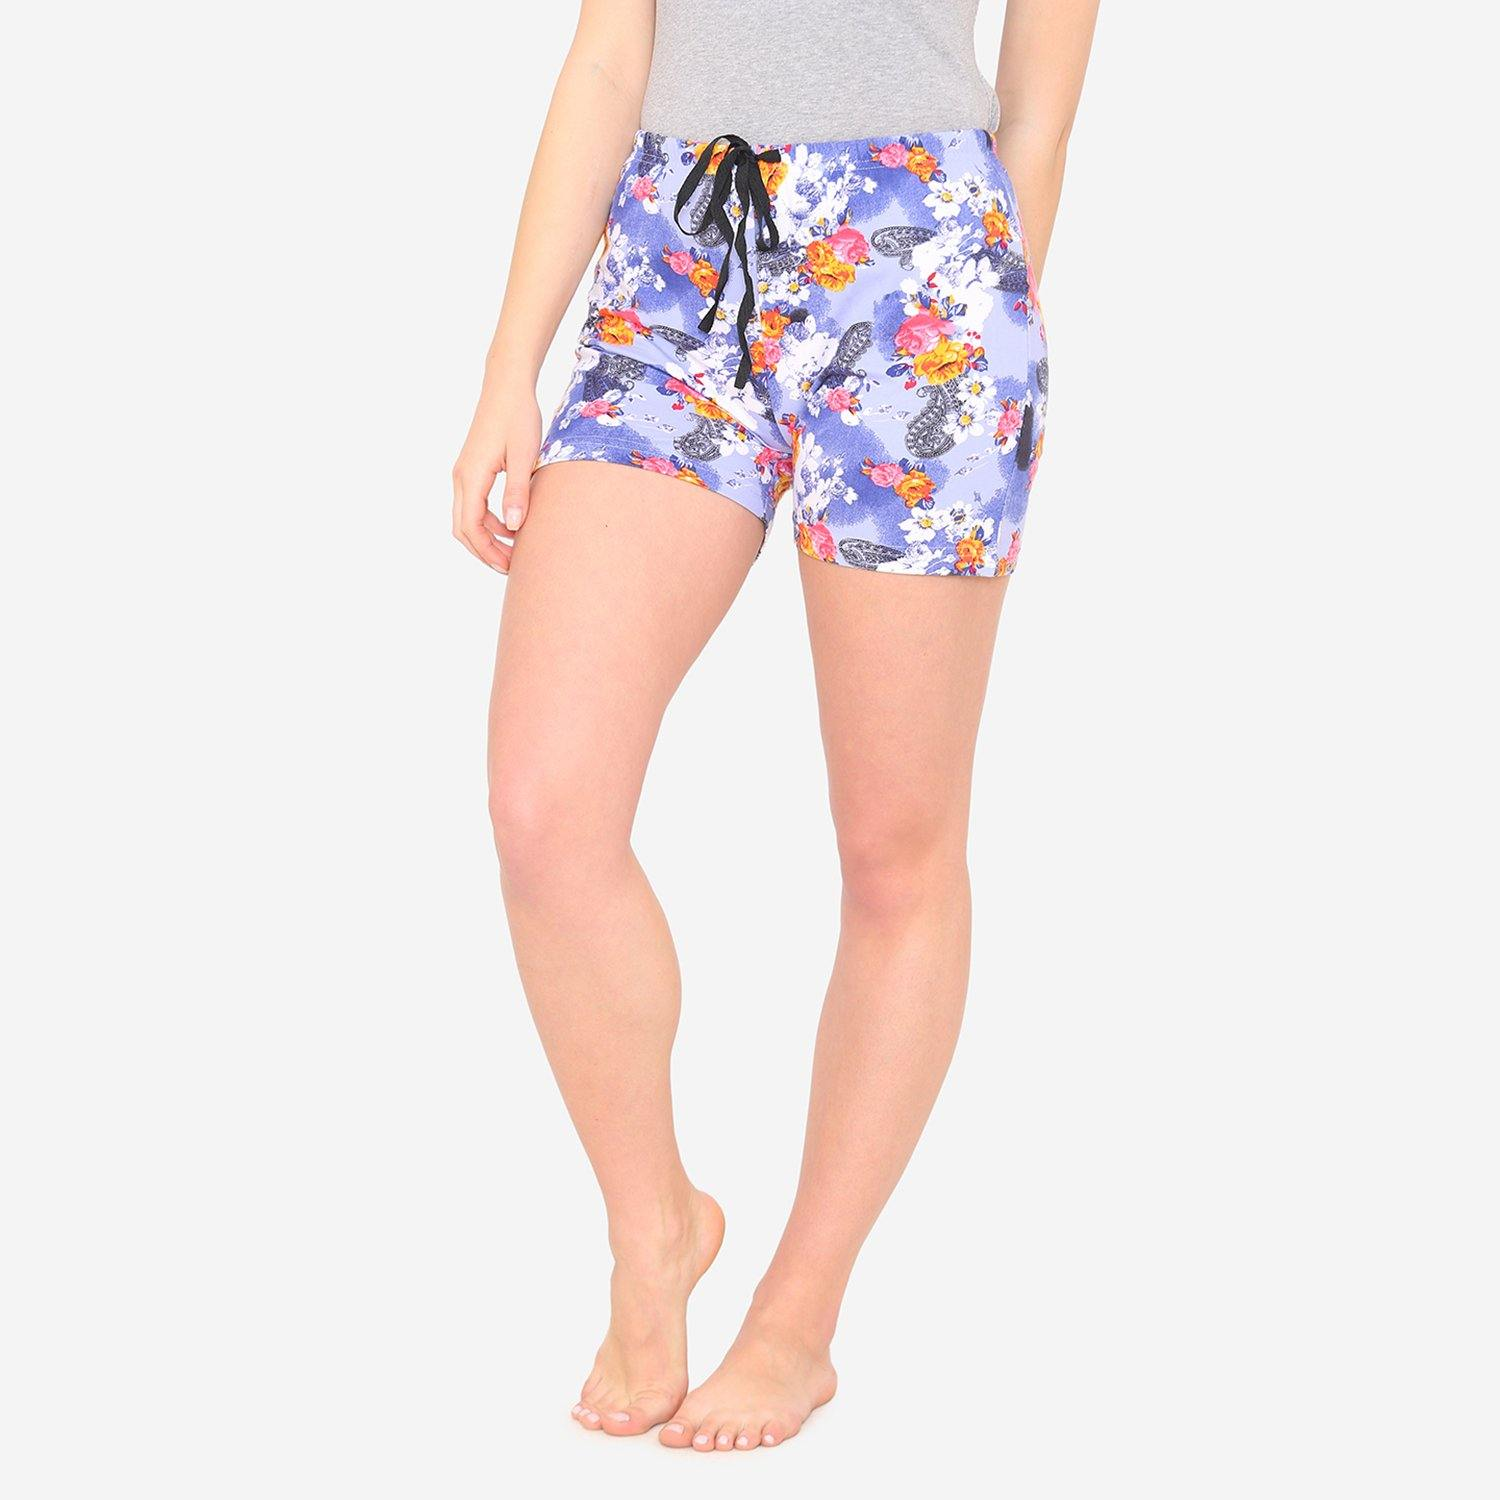 Women's Floral Prints Casual Comfy Summer Short